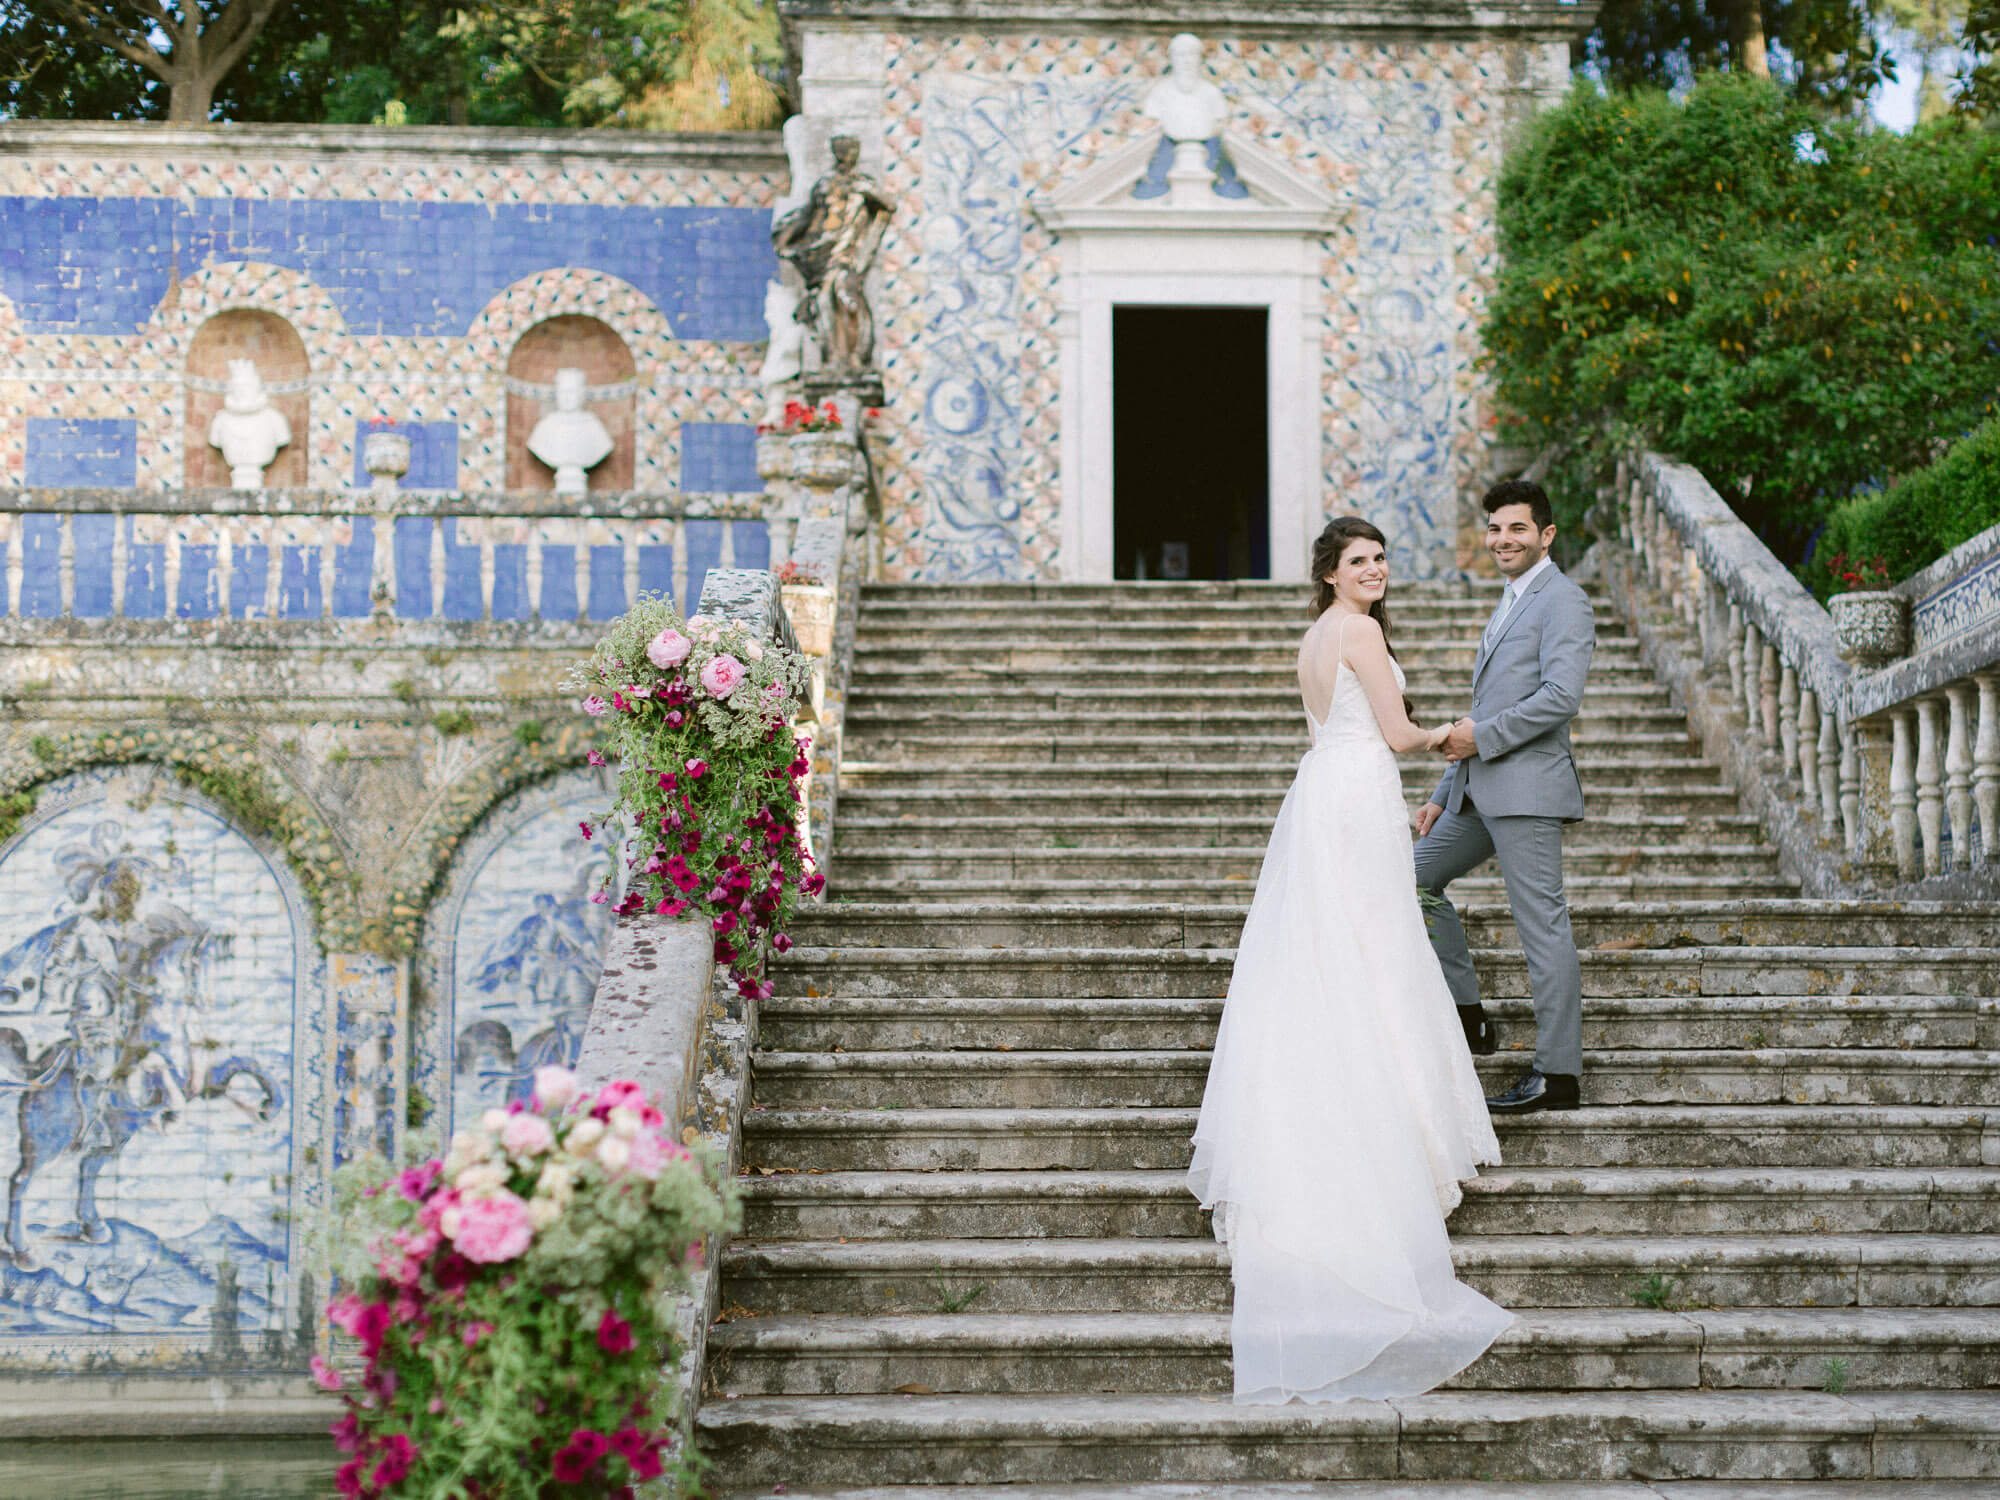 happy newlyweds on a staircase and background of Portuguese tiles wall by Portugal Wedding Photographer